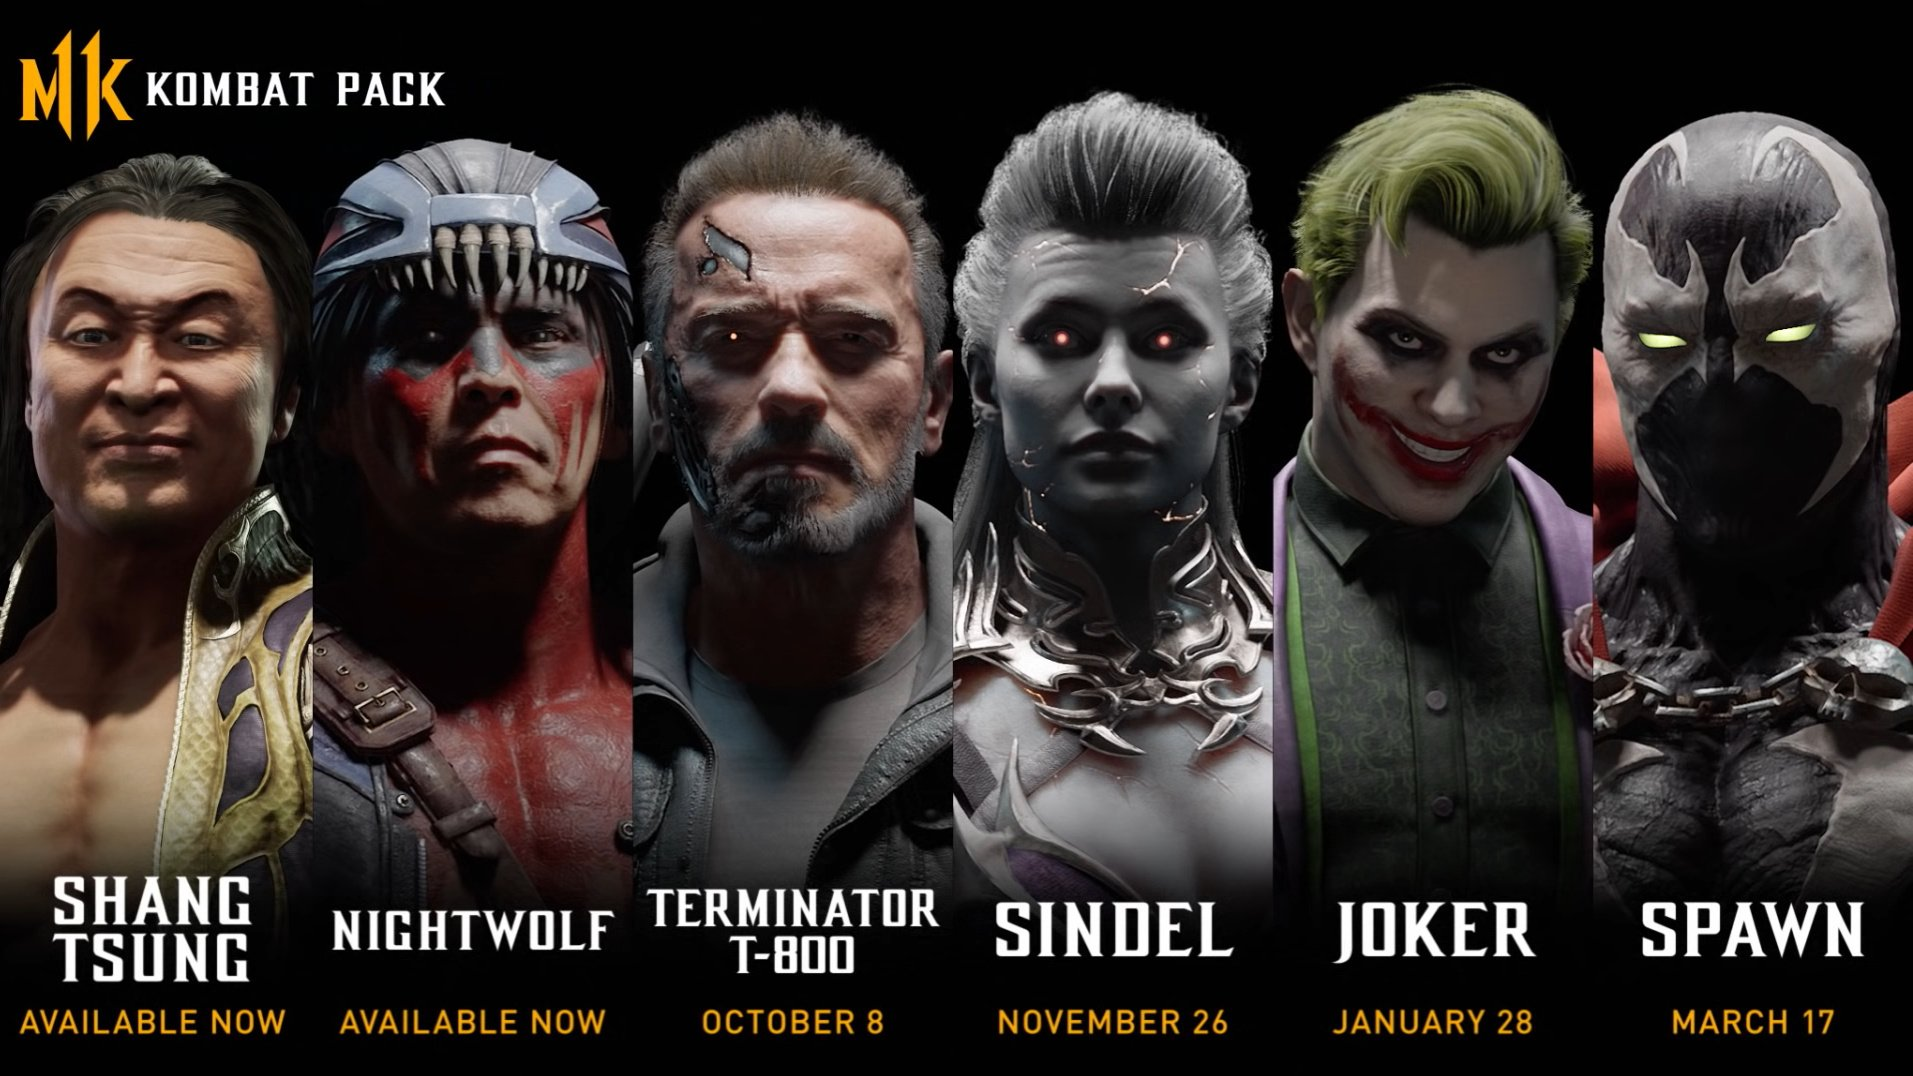 Joker joins Mortal Kombat 11 with Spawn, the Terminator, and more